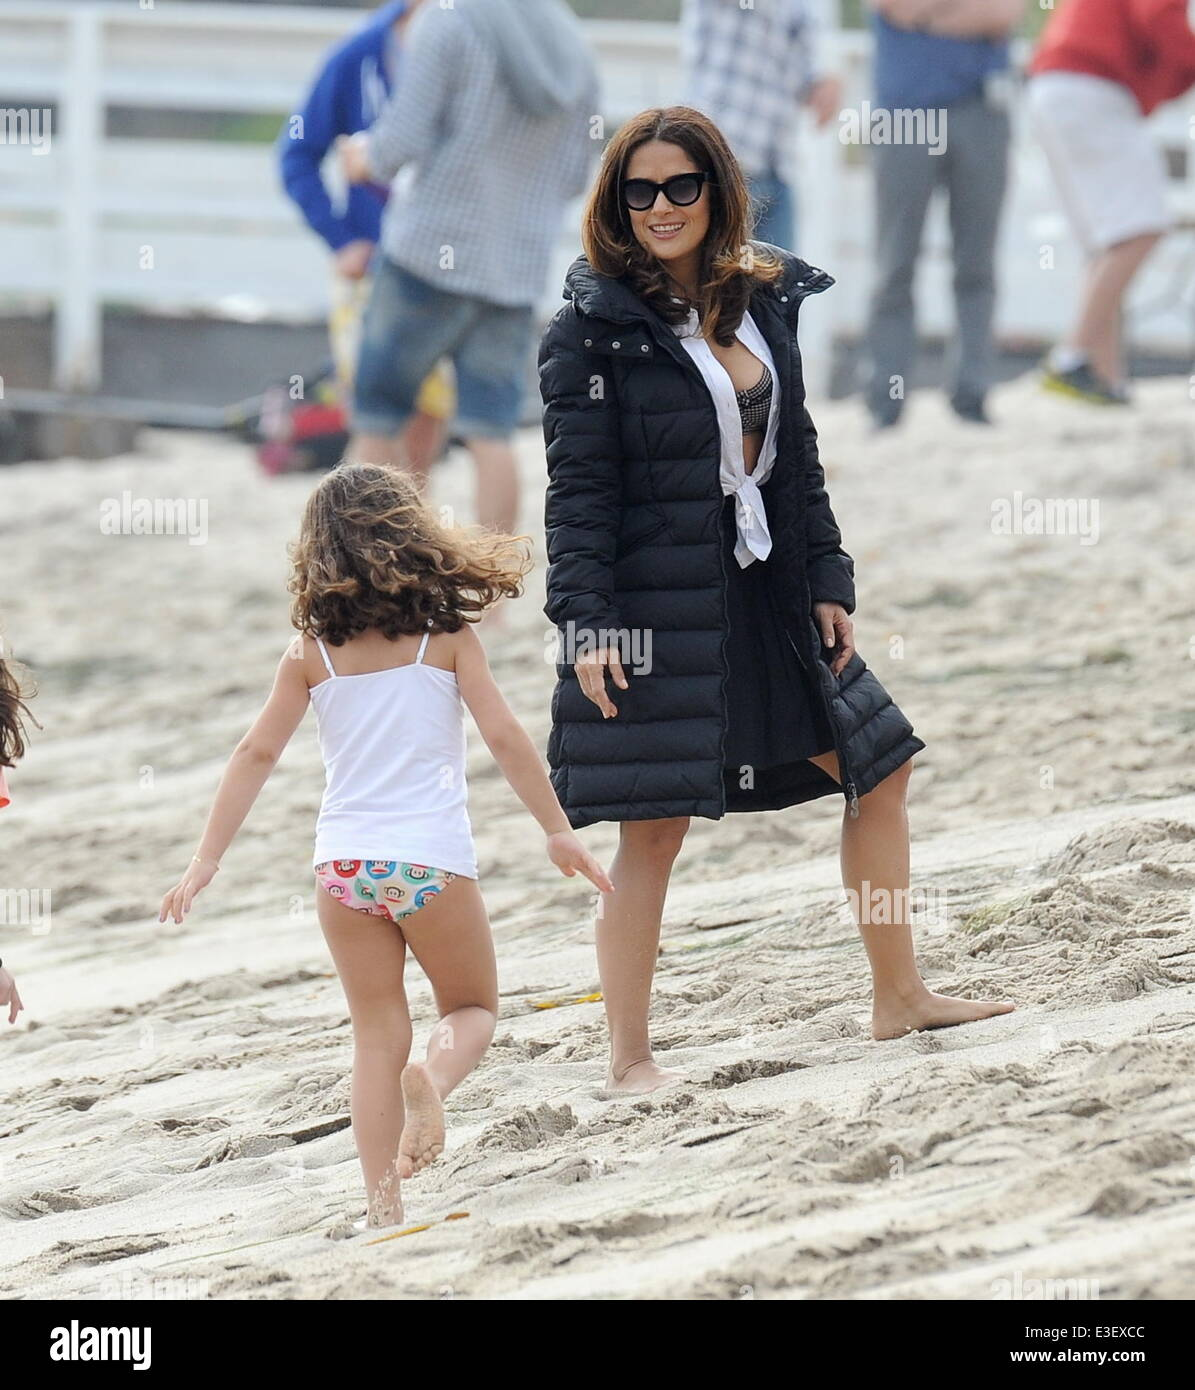 Salma Hayek shows off her curves on the beach for a scene